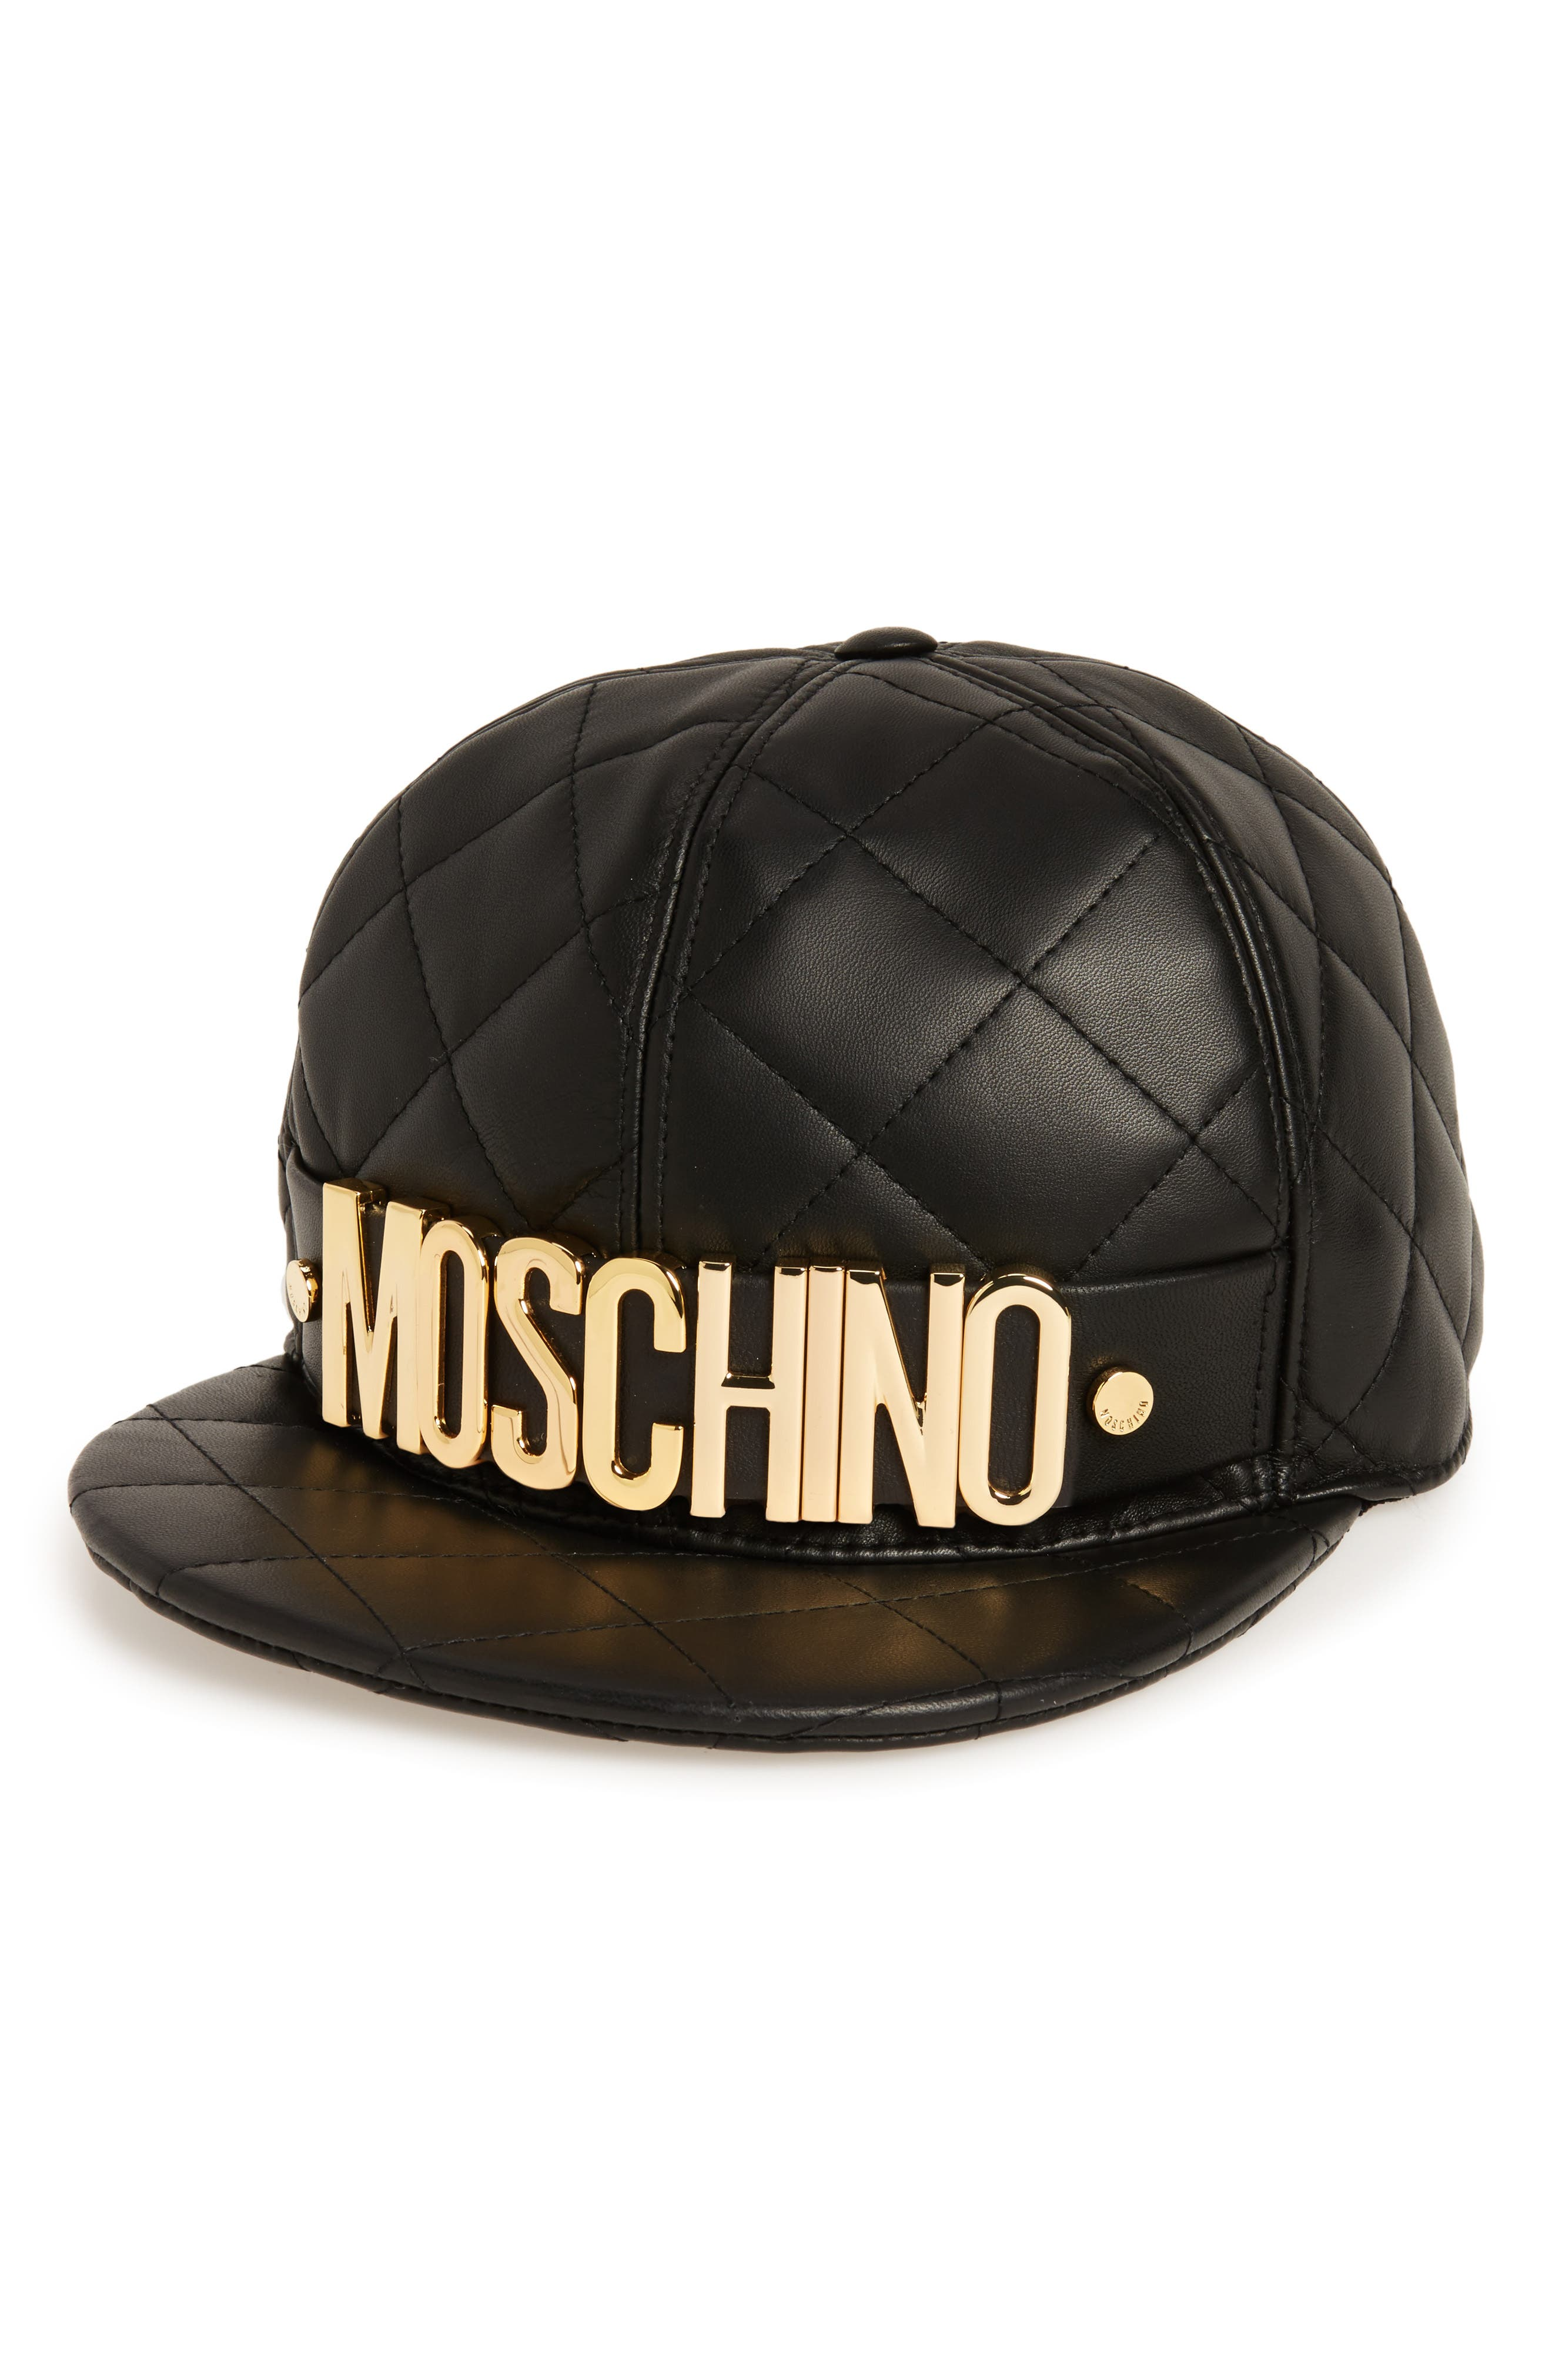 MOSCHINO Quilted Leather Baseball Cap, Main, color, BLACK